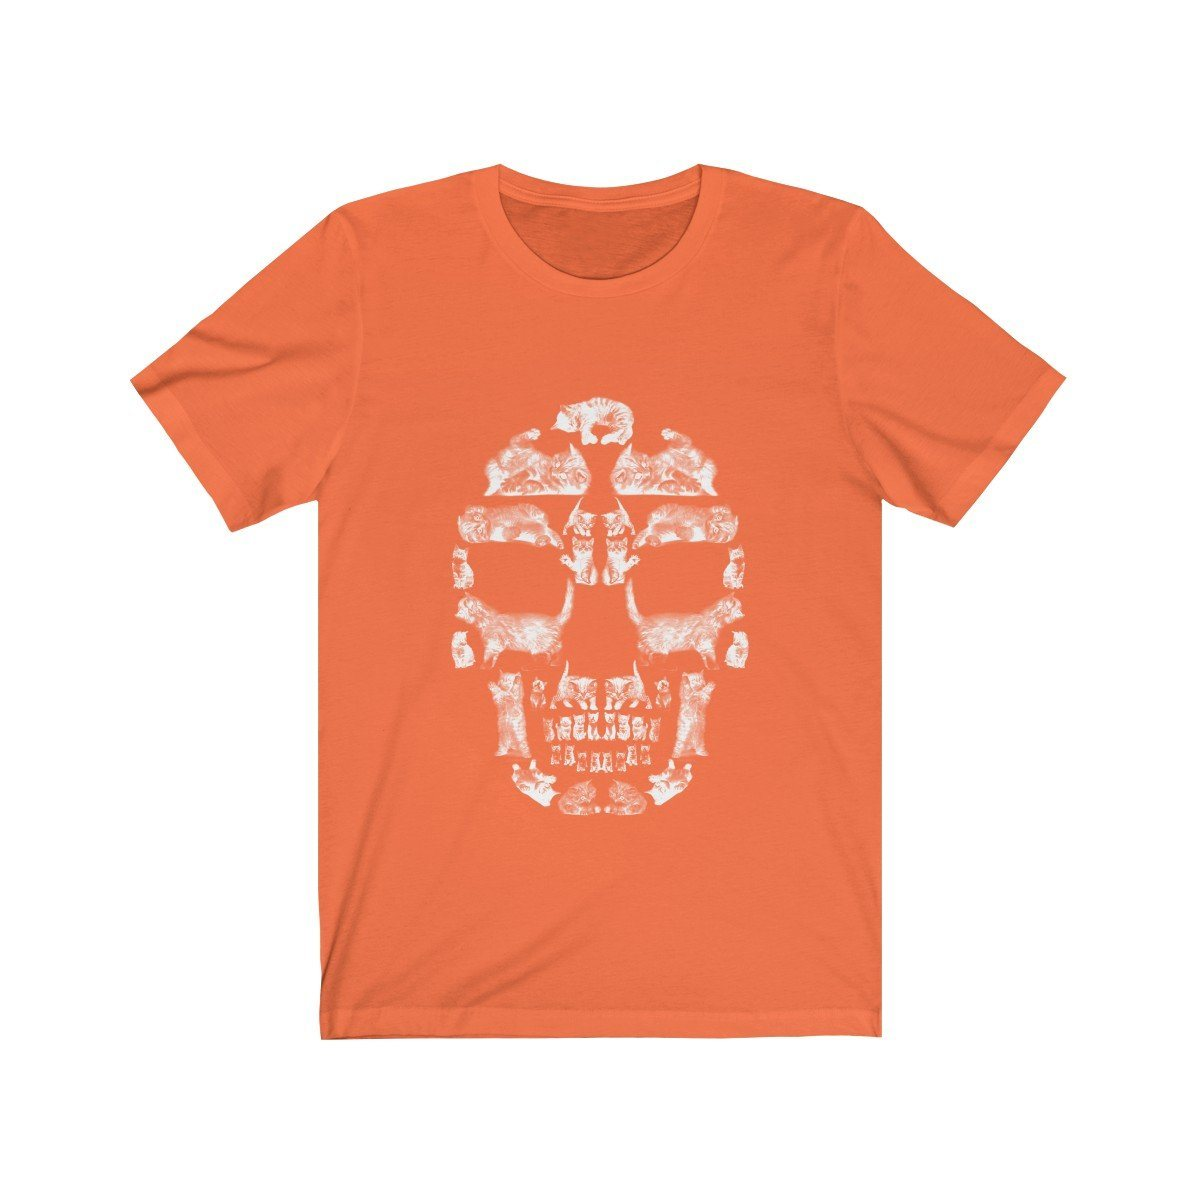 Kitten Skull - White - Unisex Jersey Short Sleeve Tee T-Shirt Printify Orange XS